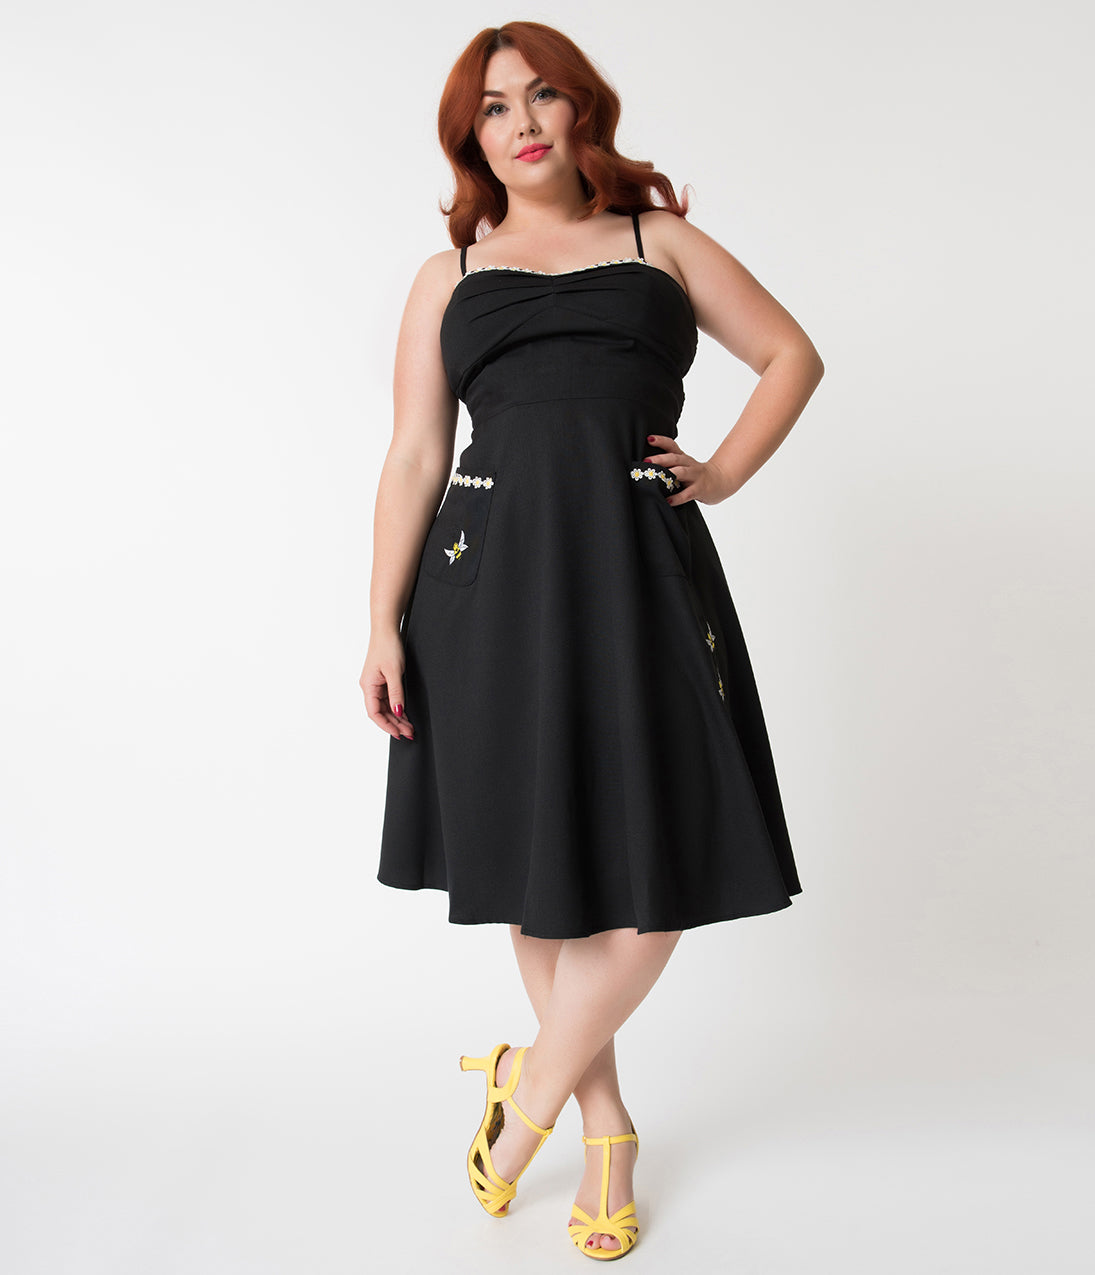 1950s Plus Size Dresses, Clothing | Plus Size Swing Dresses Black Bee Embroidery Flared Dress $74.00 AT vintagedancer.com